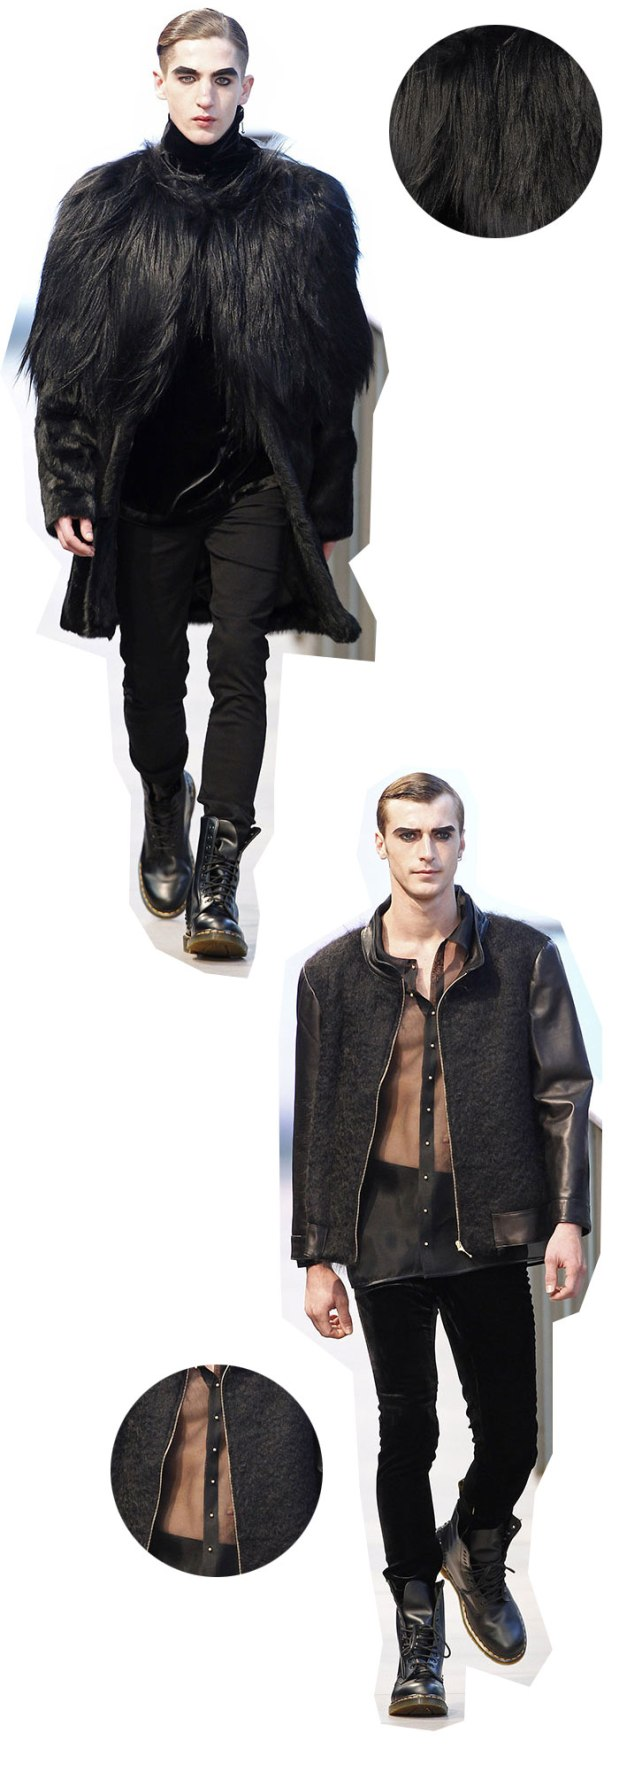 albeniz-080-barcelona-fashion-fw2014-2015-men-collection-modaddiction